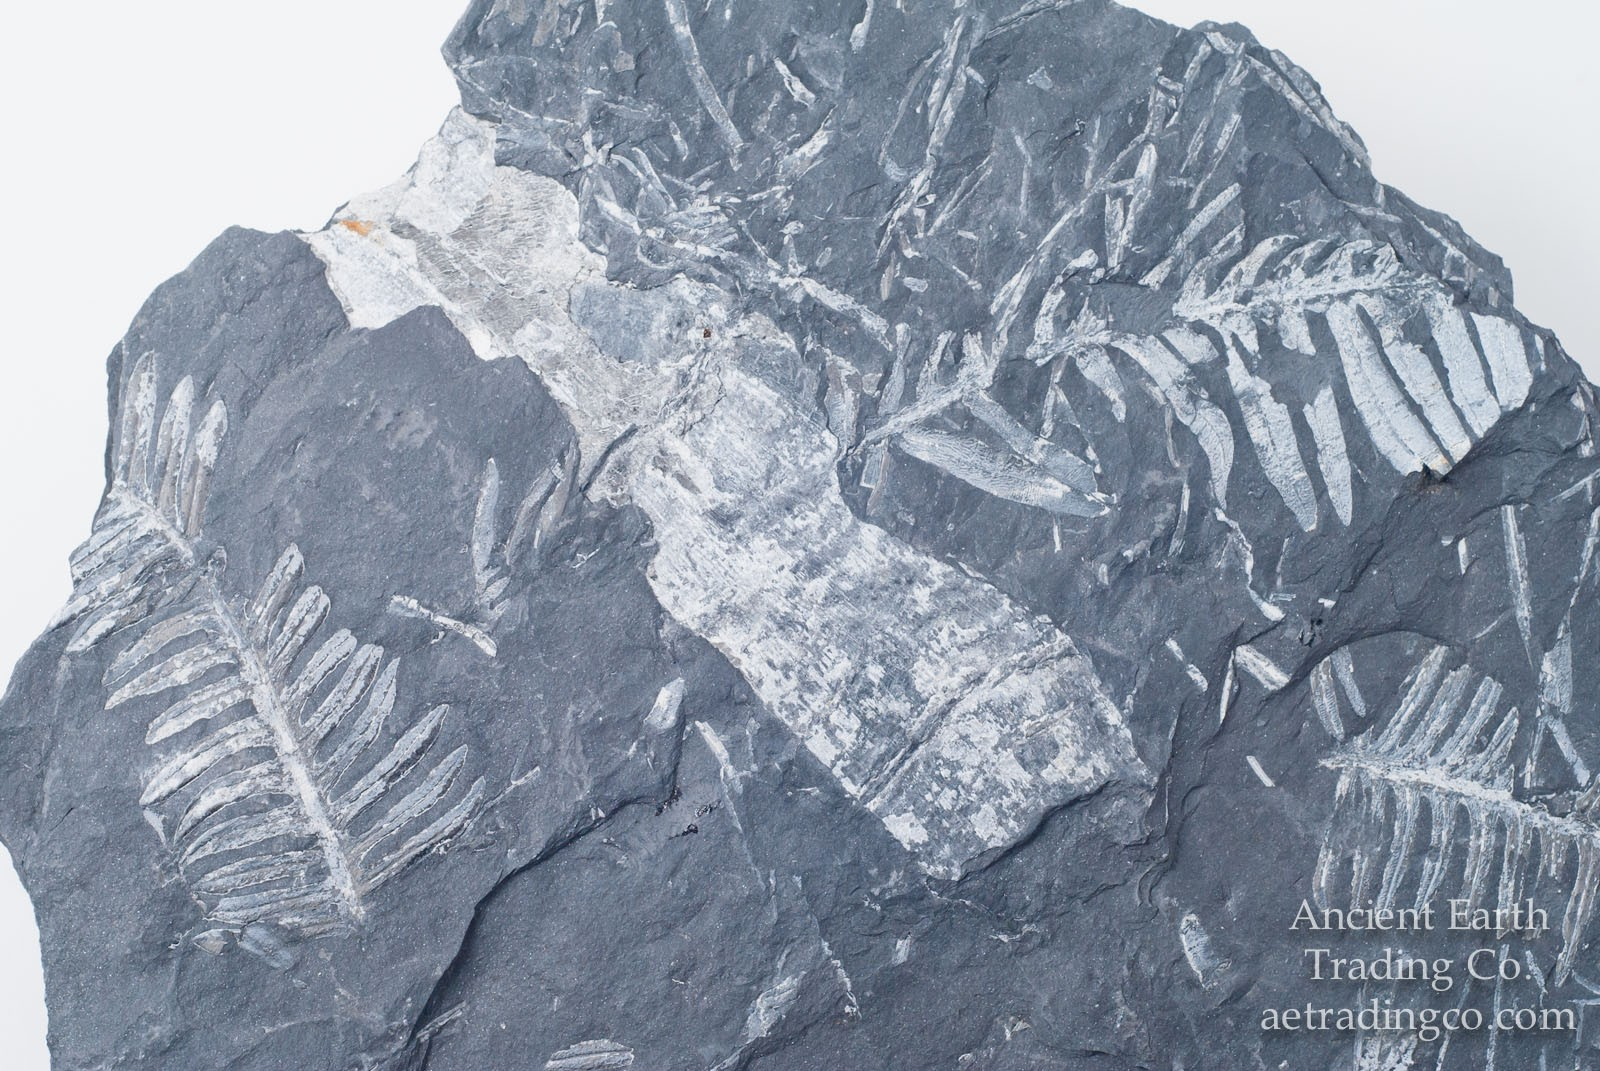 Seed Fern Branch with Multiple Leaf Fossils from Pennsylvania USA